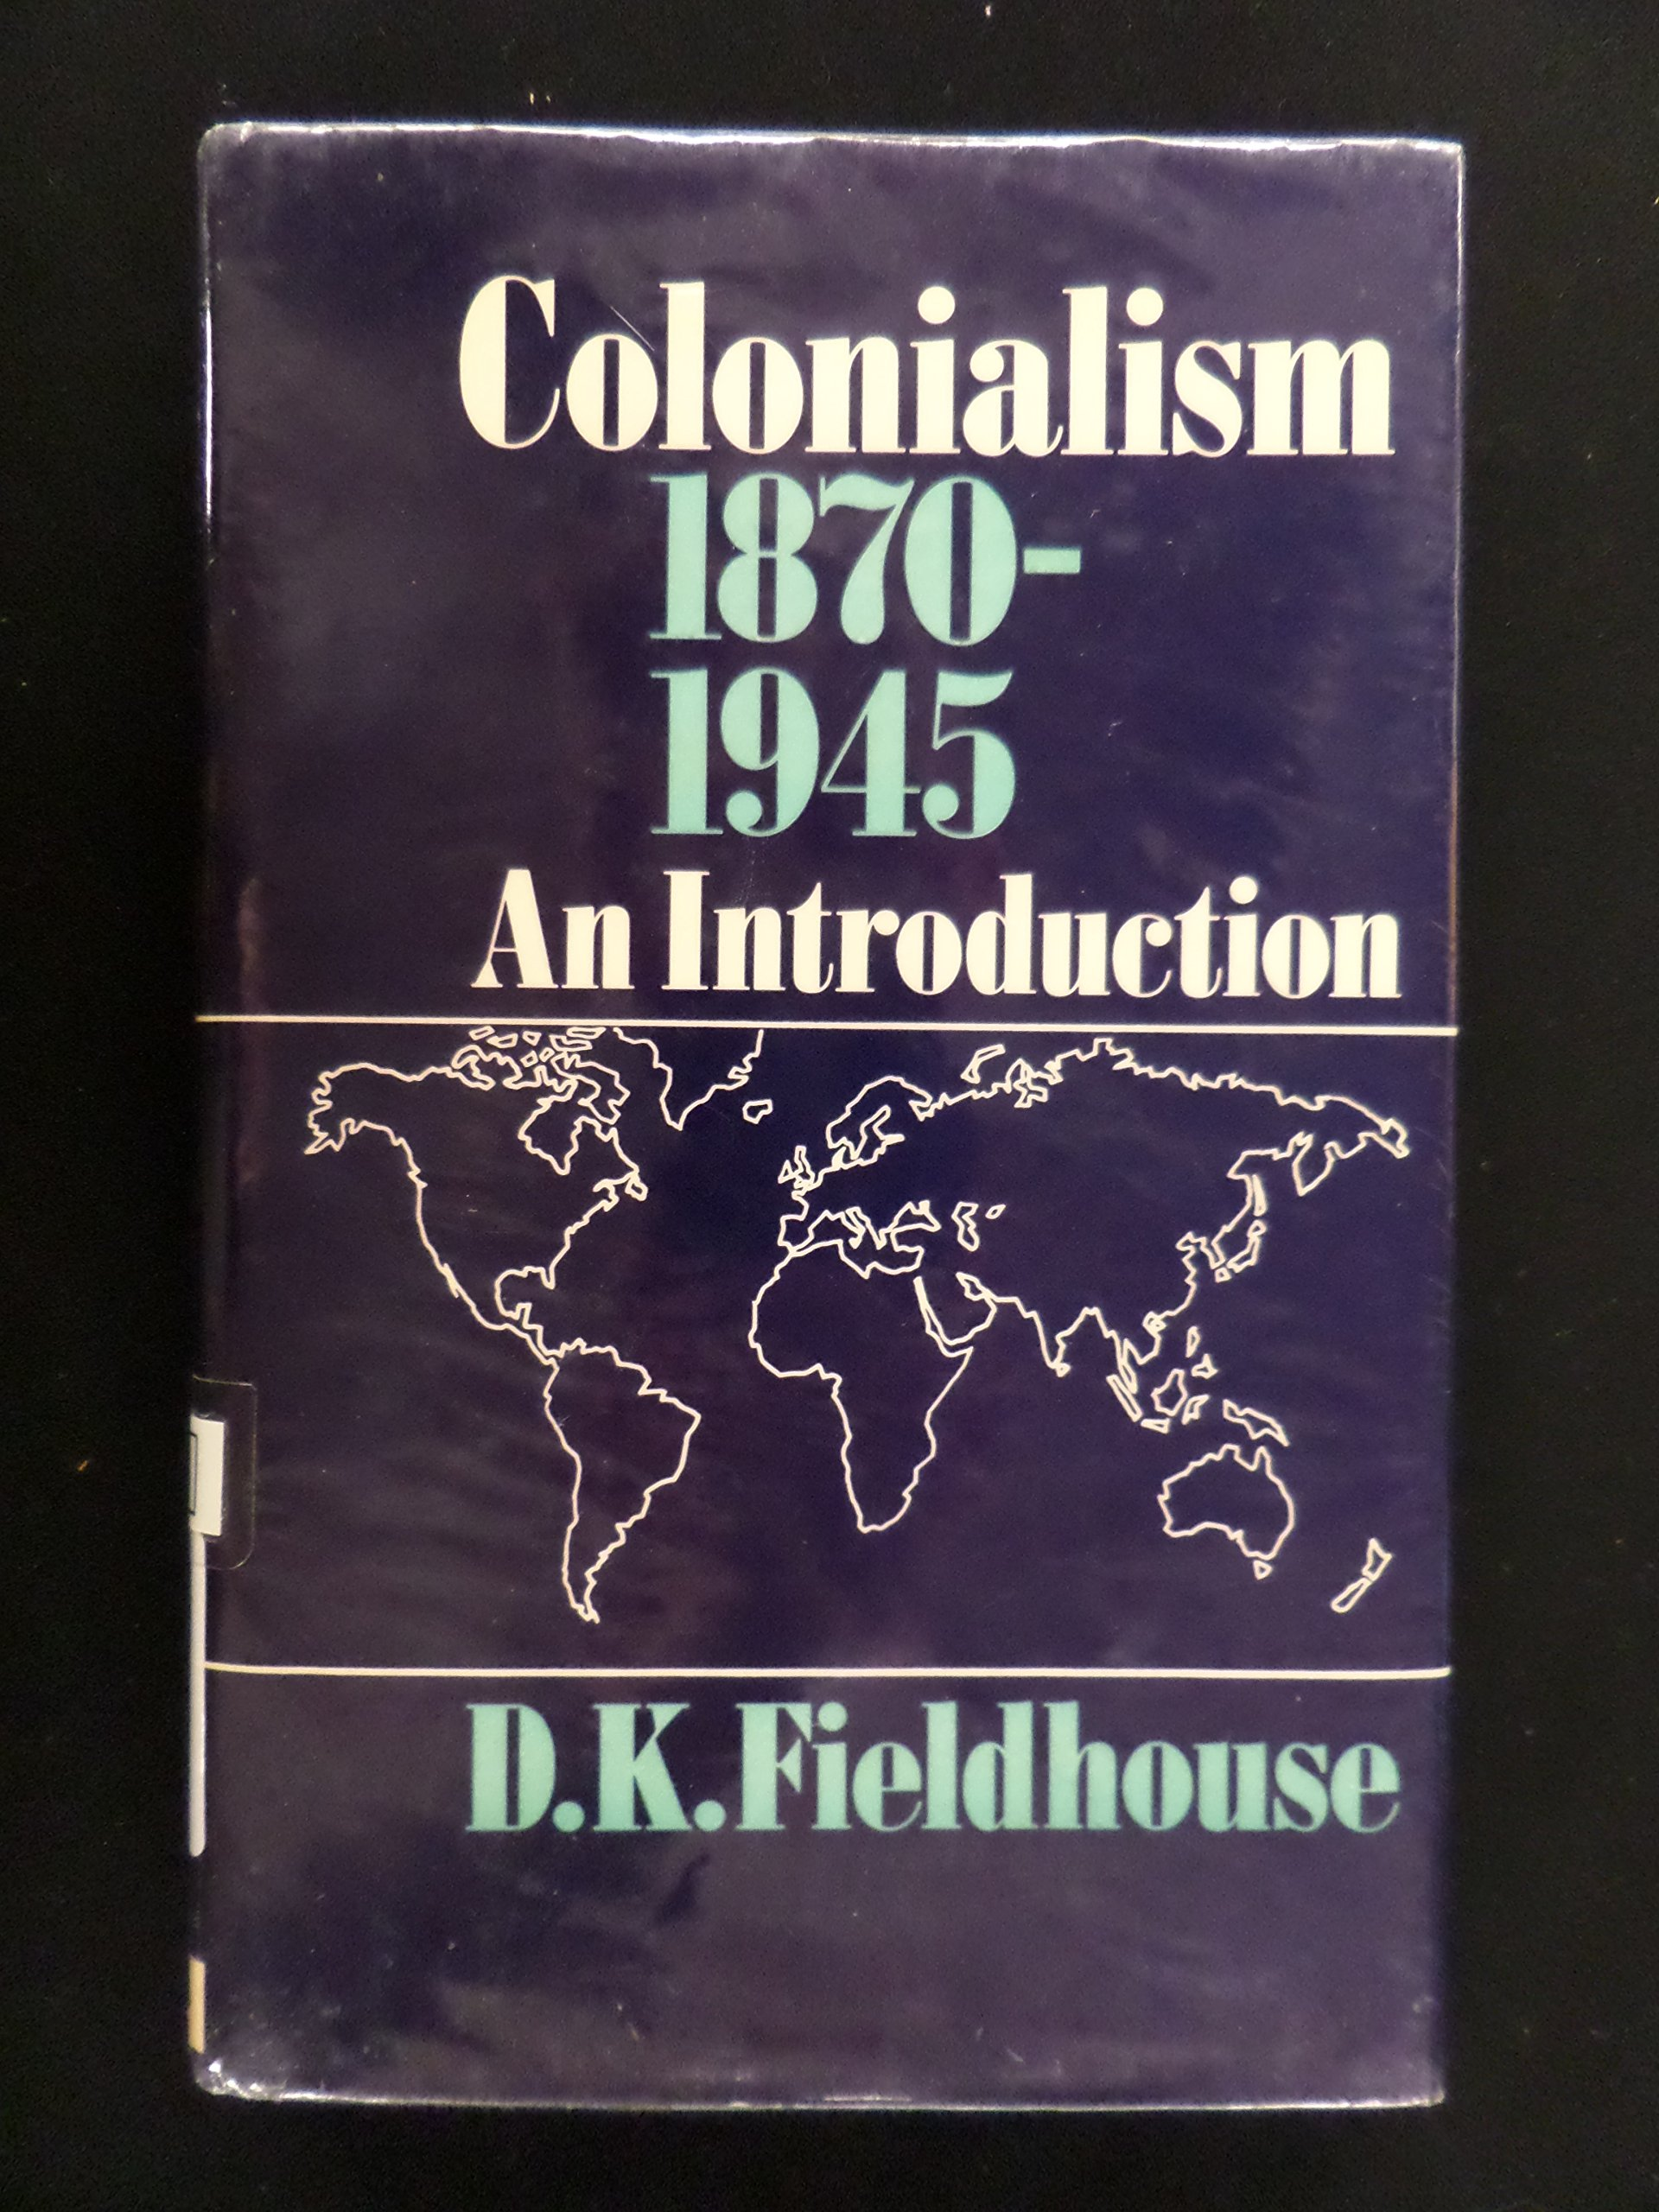 Colonialism, 1870-1945 : an introduction